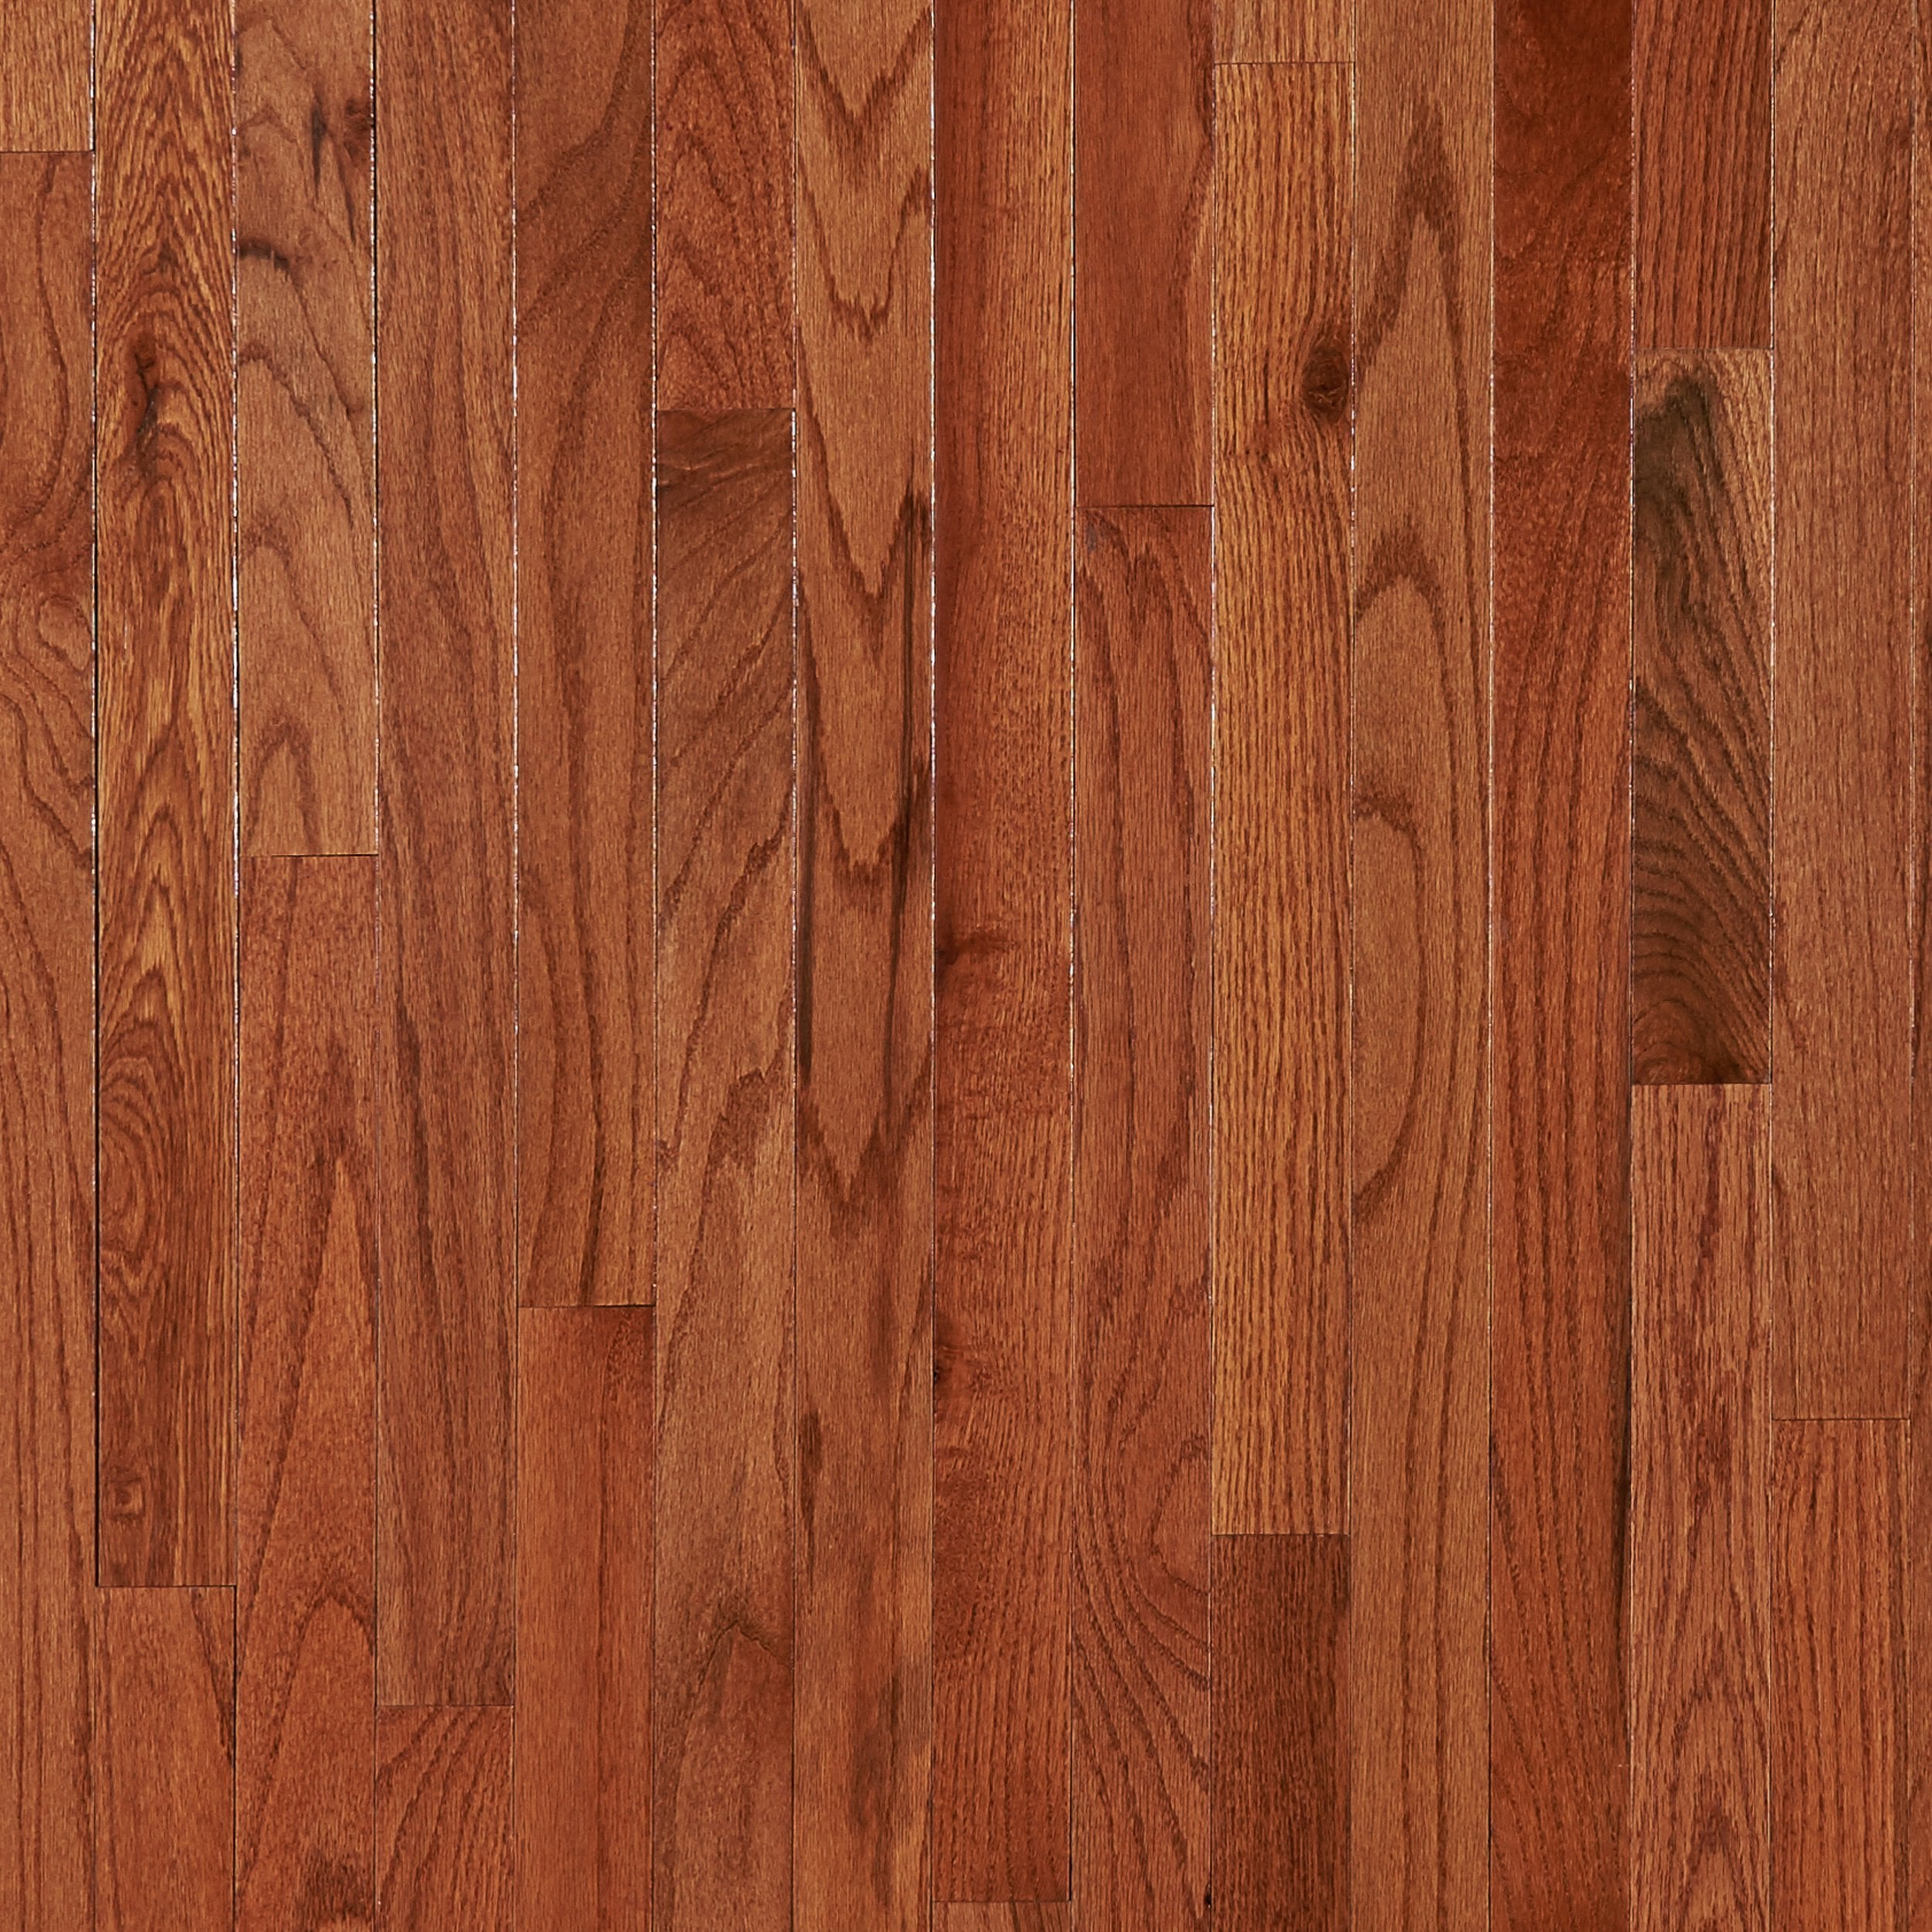 White Oak Finished Hardwood Discounts Hardwood Floor Depot